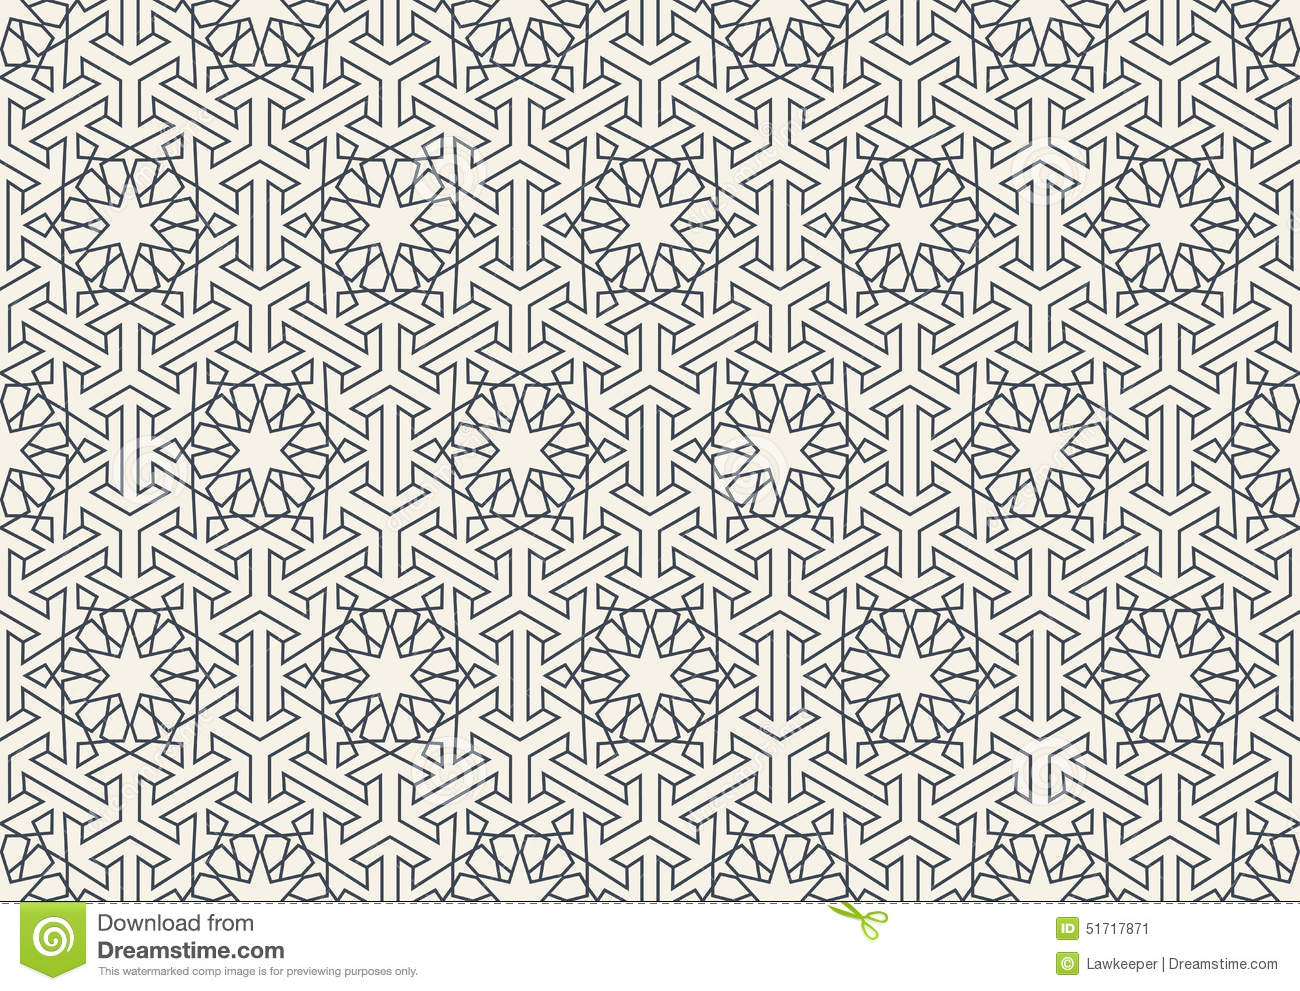 Popular   Wallpaper Horse Pattern - abstract-seamless-geometric-islamic-wallpaper-pattern-your-design-51717871  Picture_872748.jpg